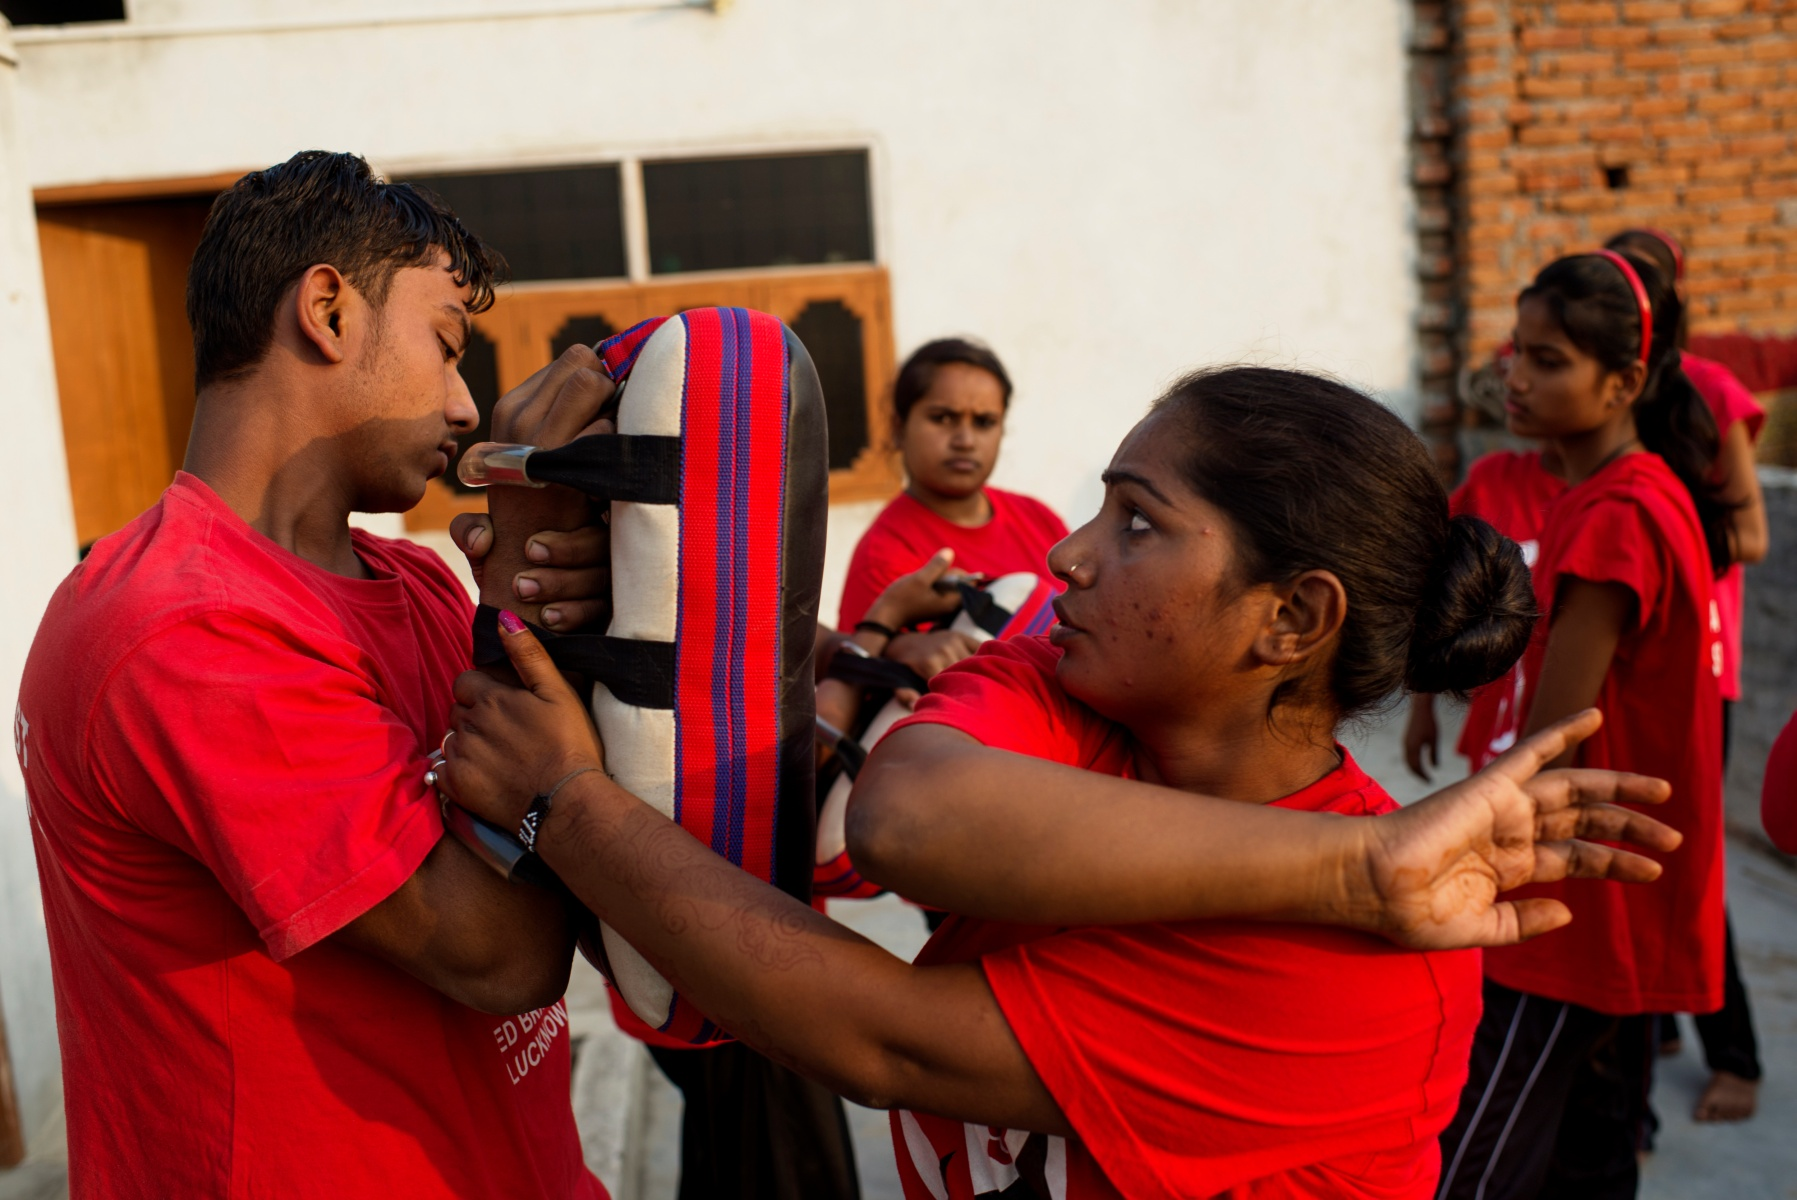 Usha, the 26 year old leader of the grassroots Red Brigade, teaches the art of self-defense to other members of the Red Brigade.  (Jonas Gratzer/LightRocket via Getty Images)